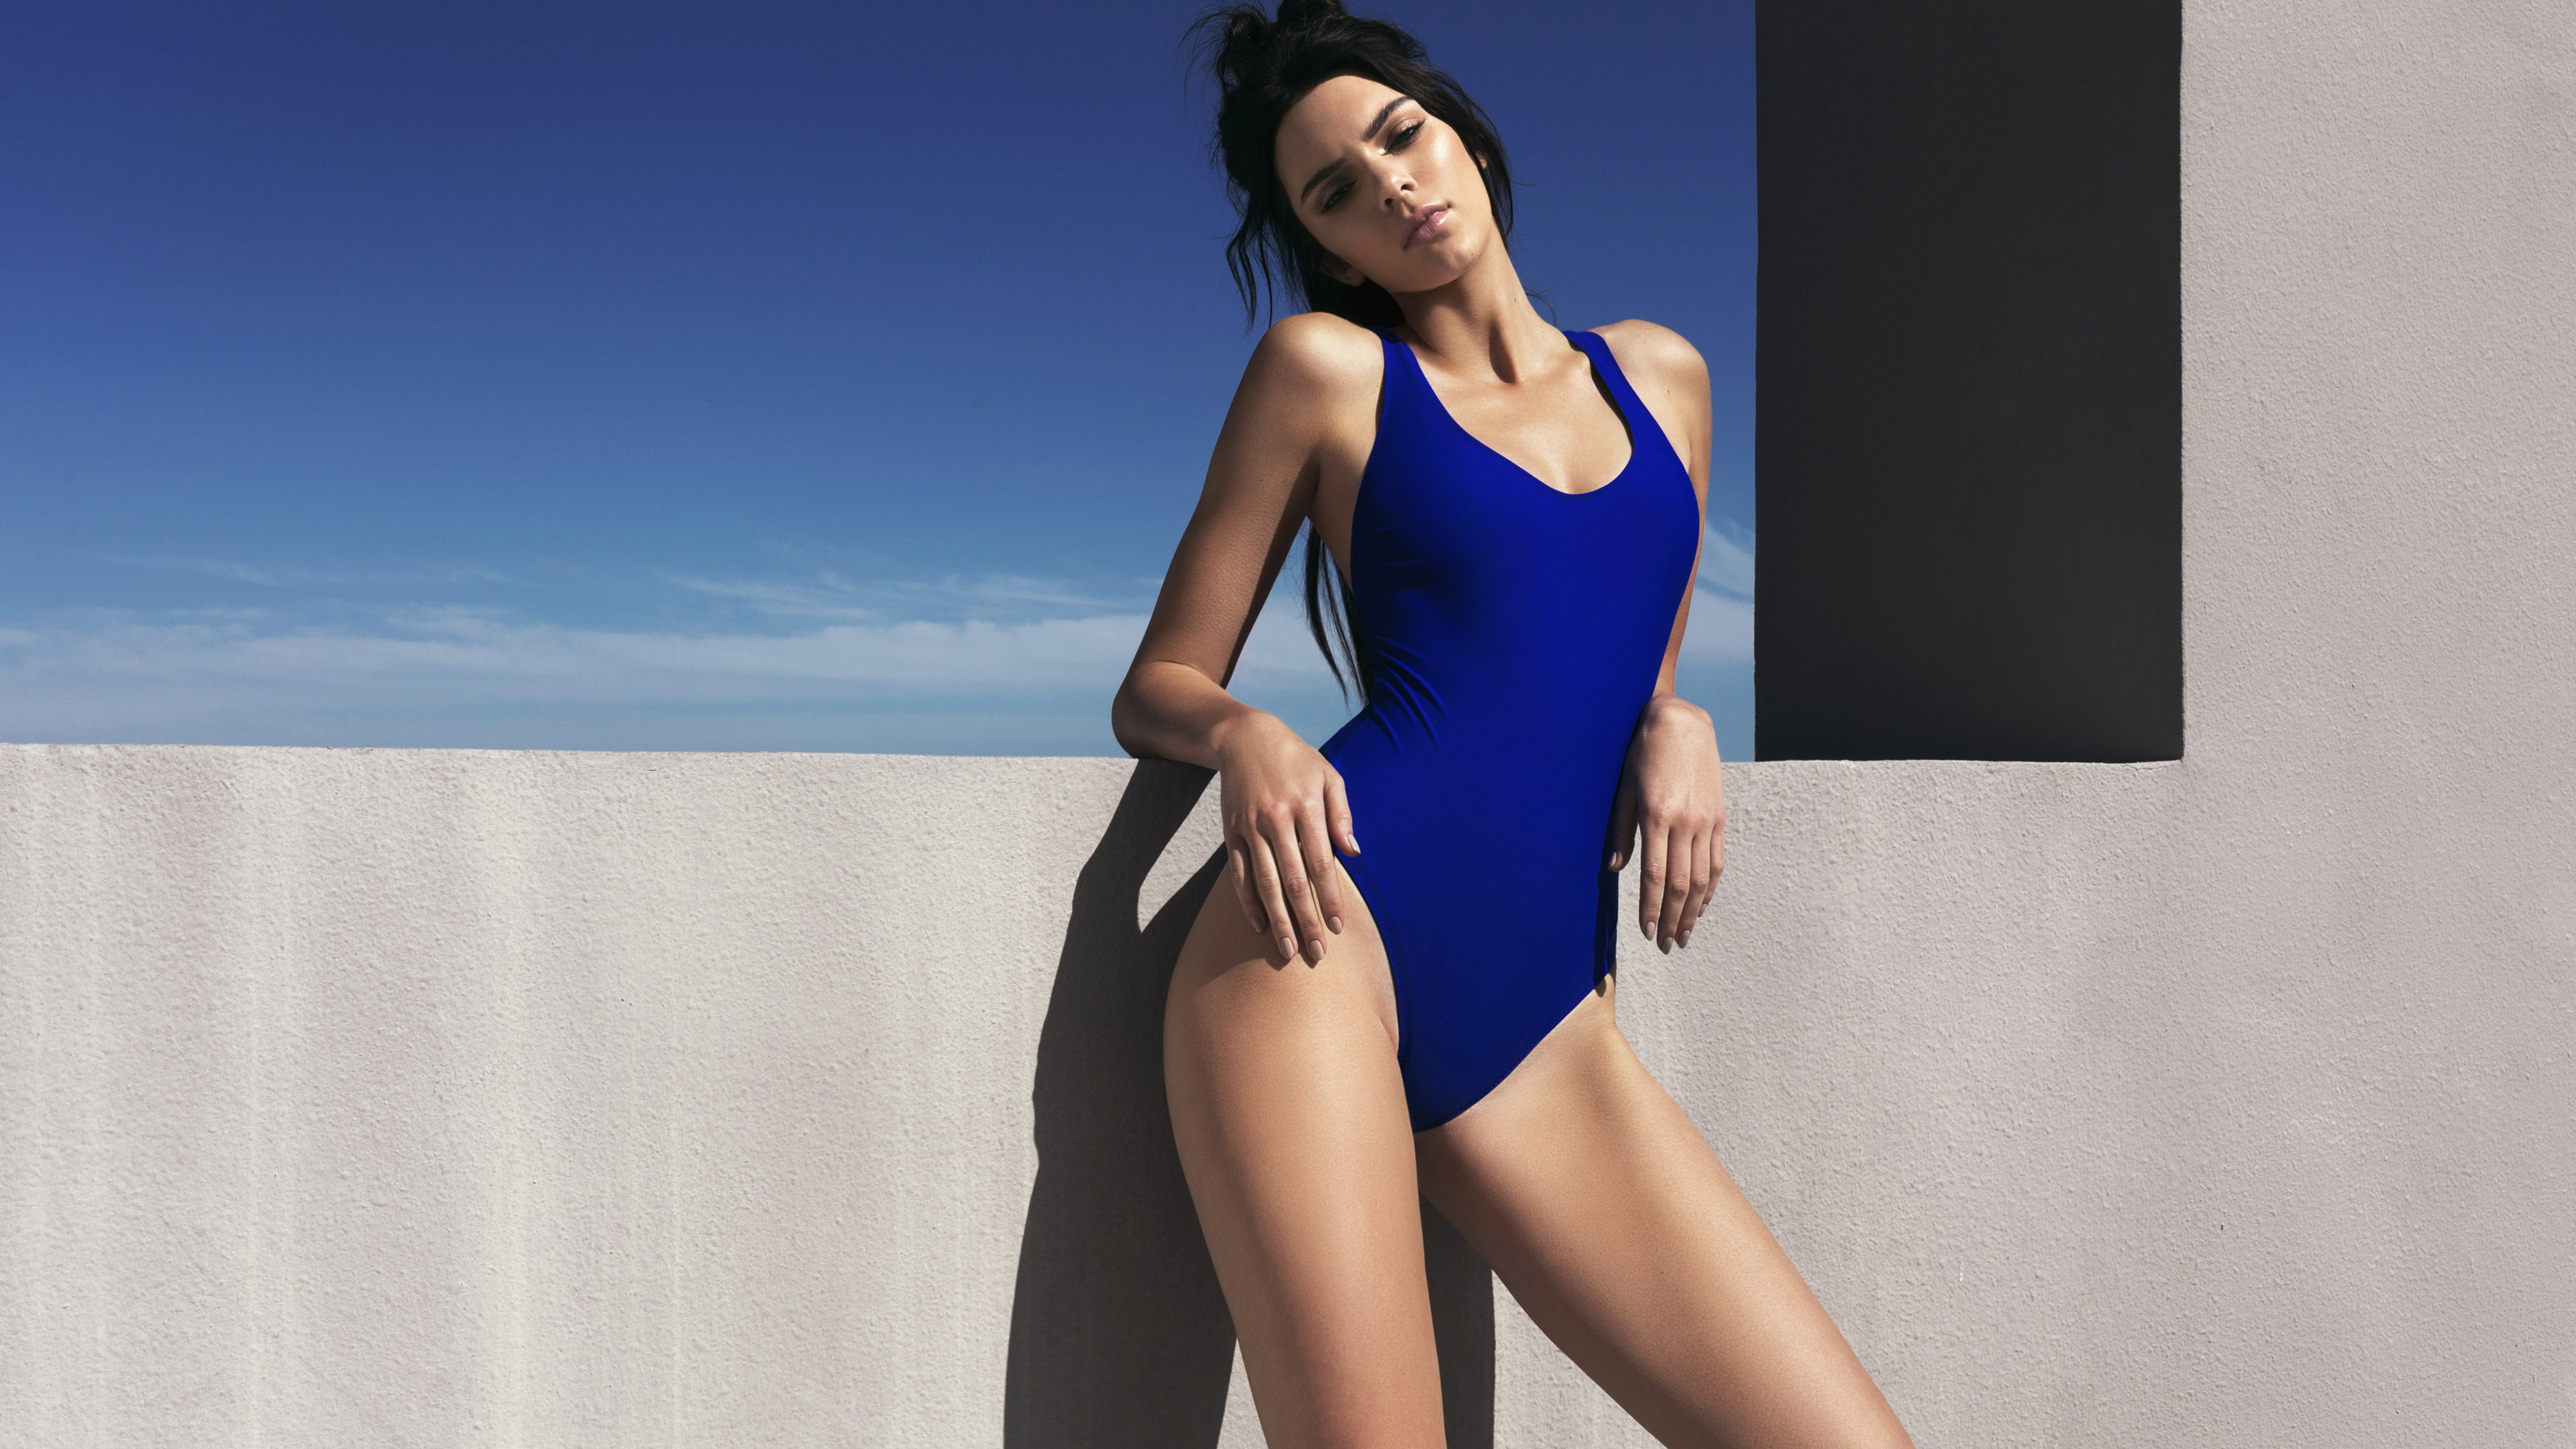 kendall jenner swimsuit 1536857072 - Kendall Jenner SwimSuit - kendall jenner wallpapers, girls wallpapers, celebrities wallpapers